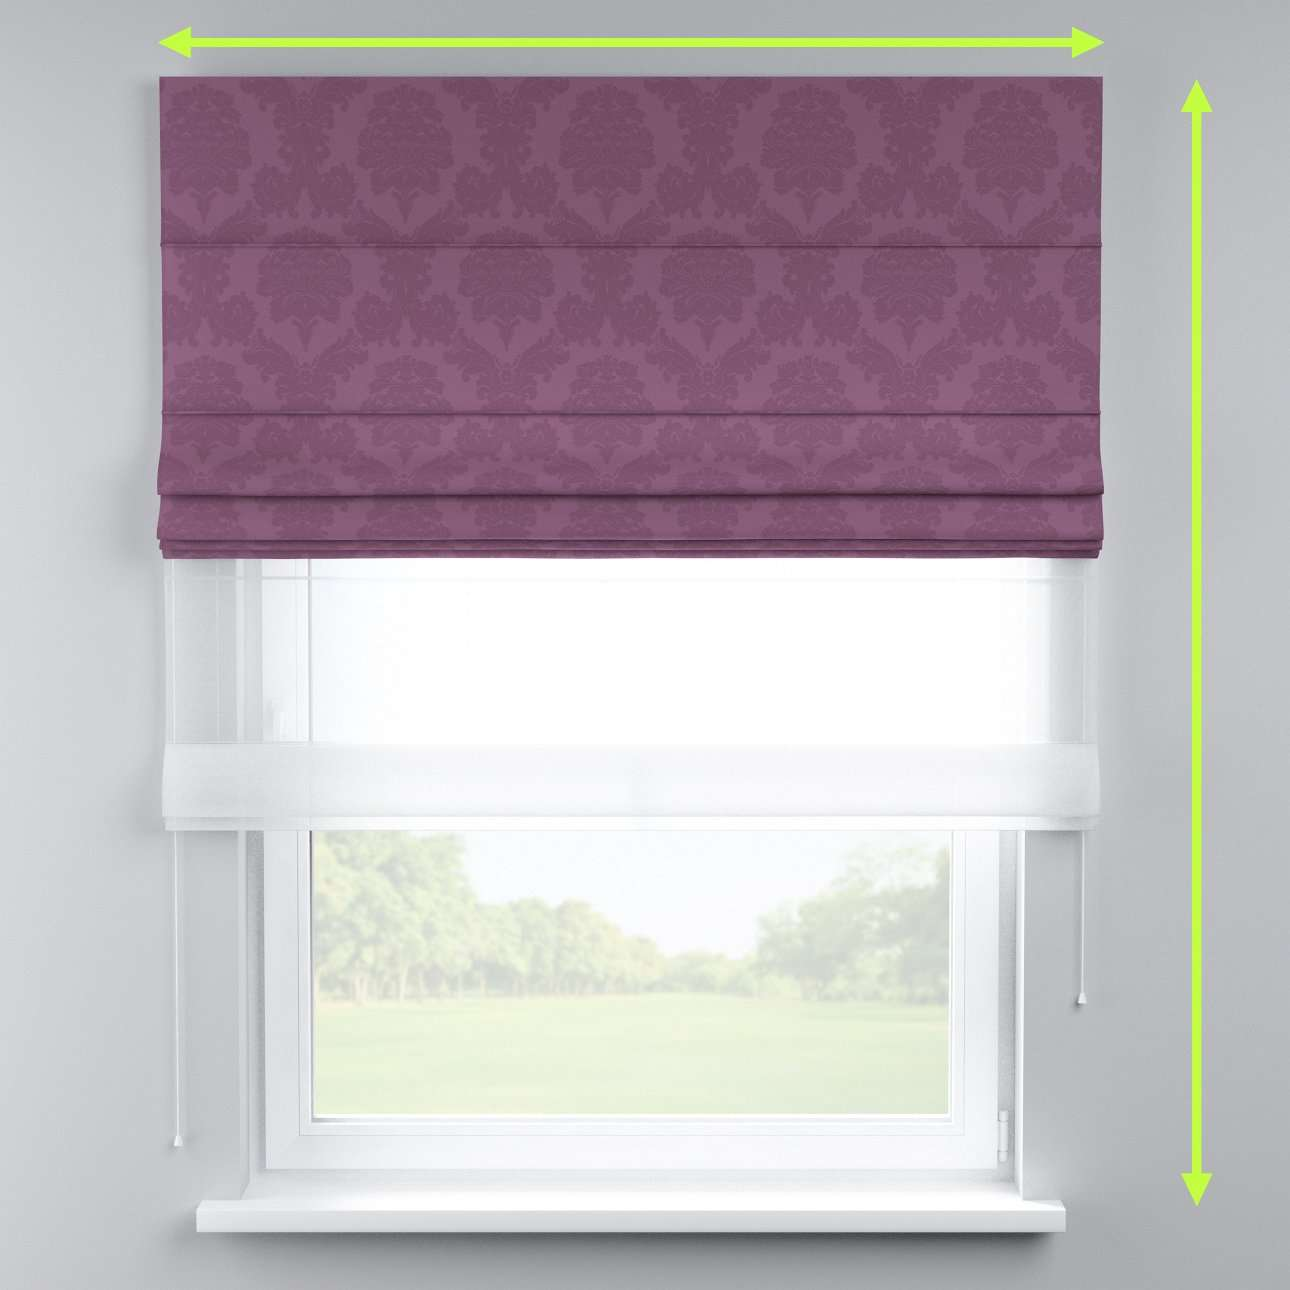 Voile and fabric roman blind (DUO II) in collection Damasco, fabric: 613-75